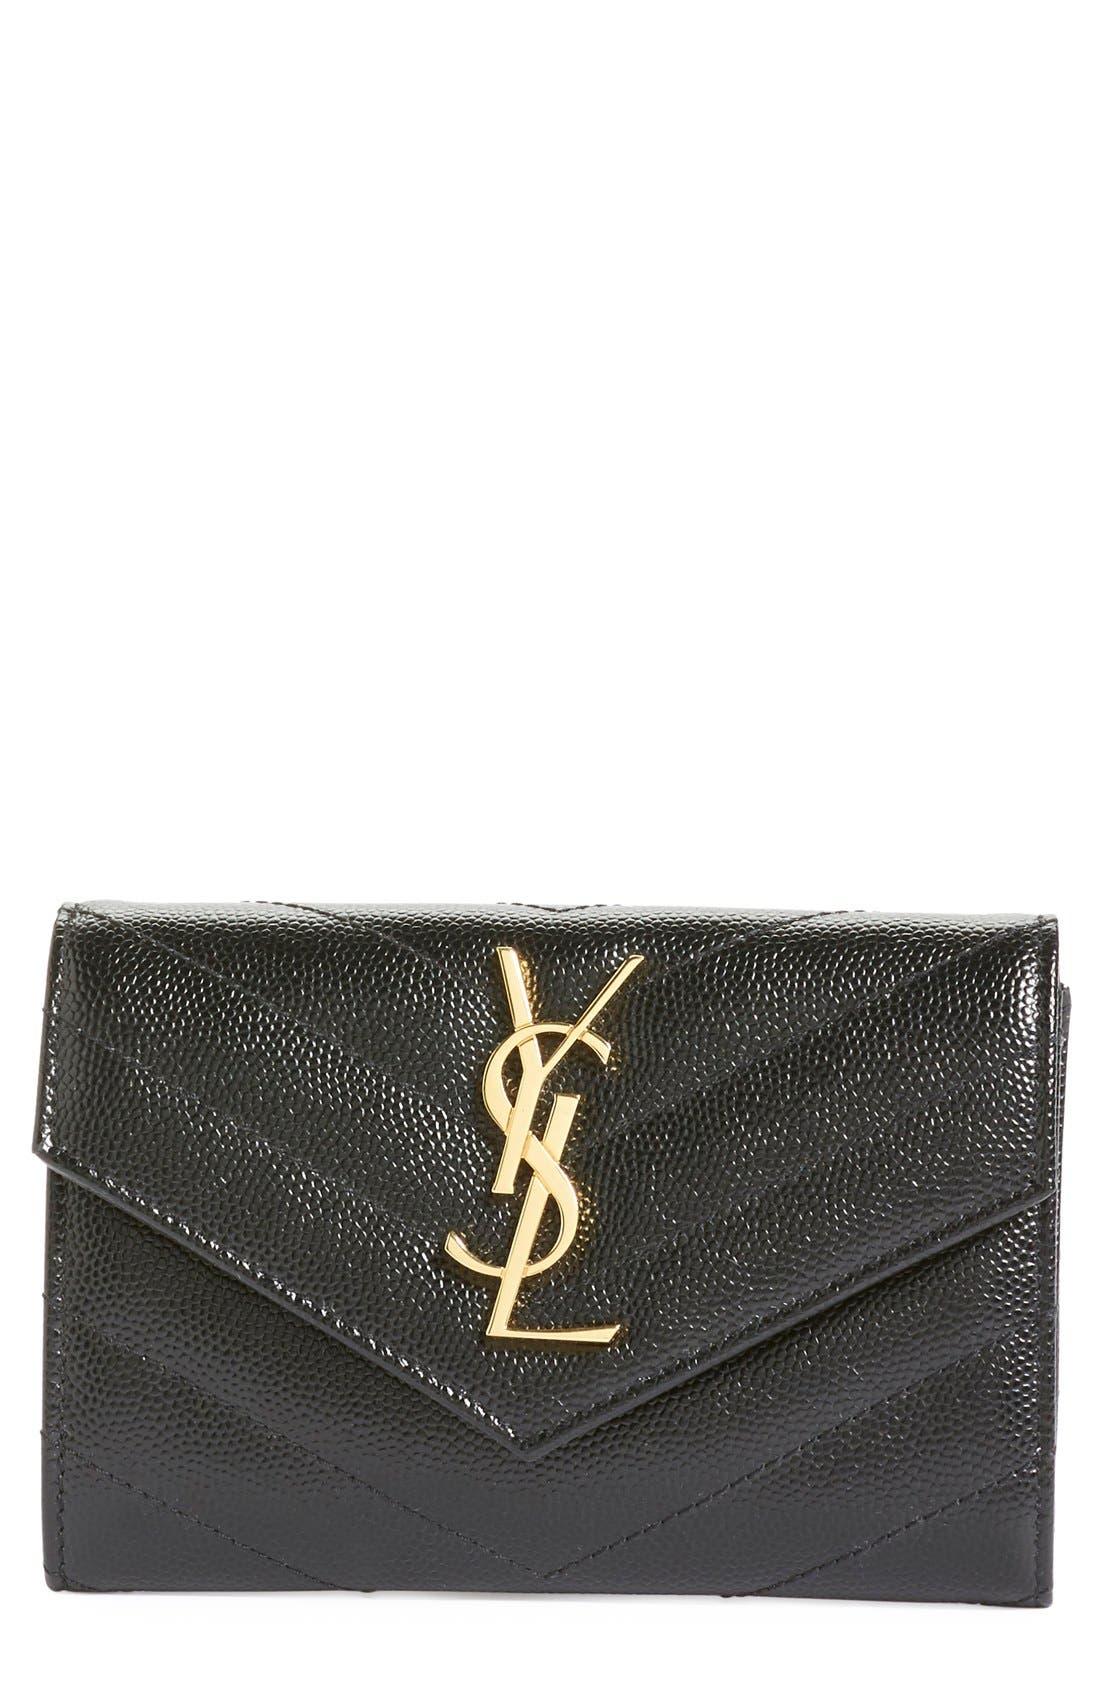 'Monogram' Quilted Leather French Wallet,                         Main,                         color, Noir